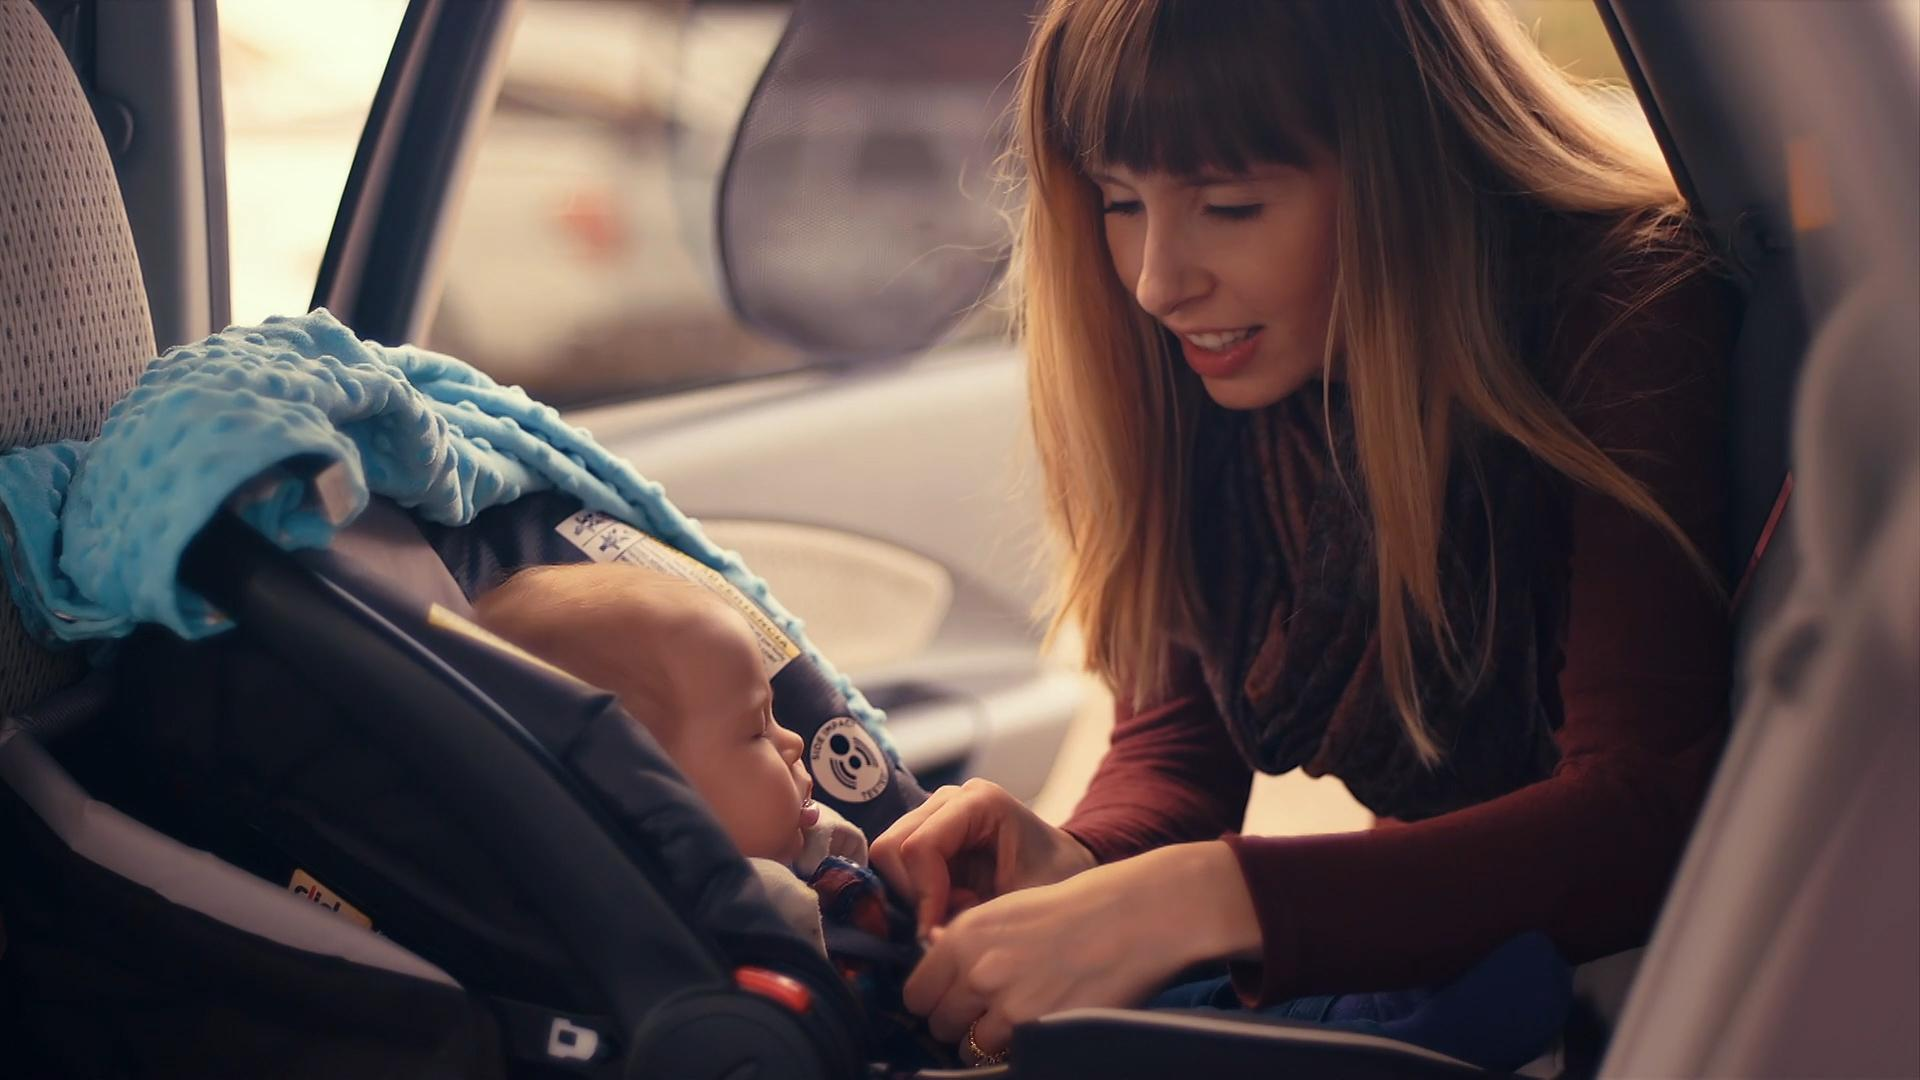 What You Need To Know About Installing A Child Car Seat In The Rear Center Seat Consumer Reports